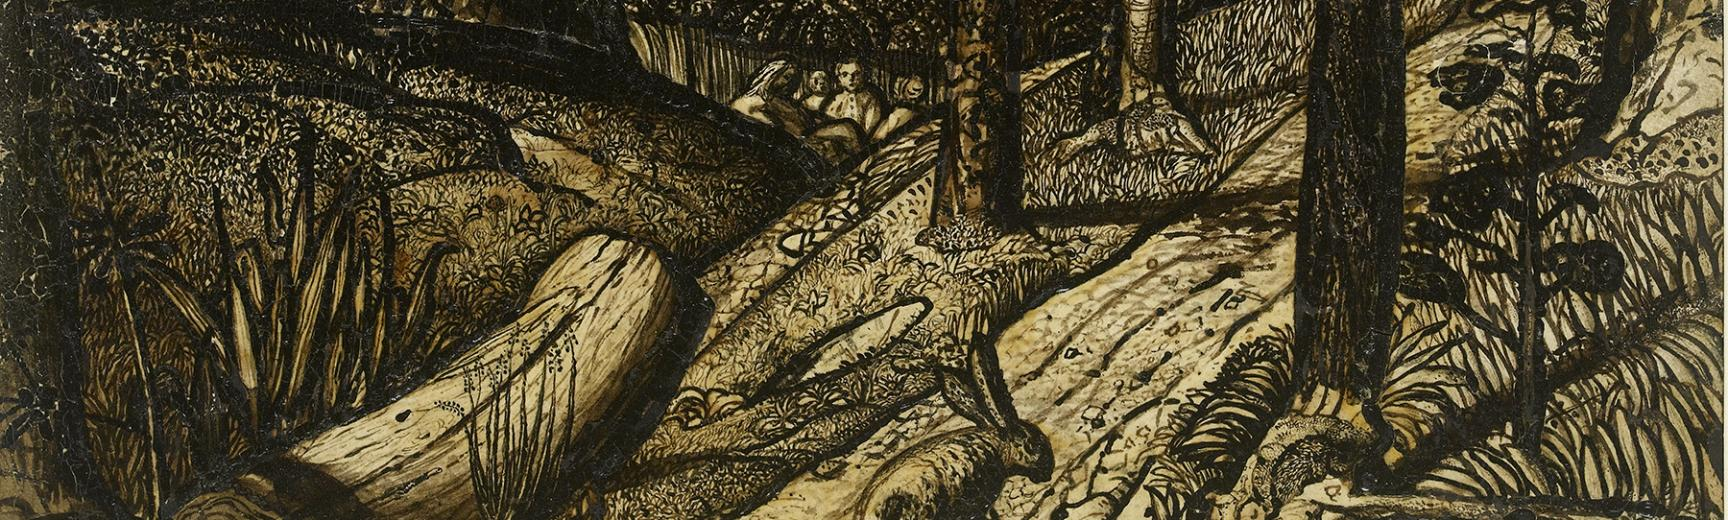 Works by Samuel Palmer – The Western Art Print Room at the Ashmolean Museum